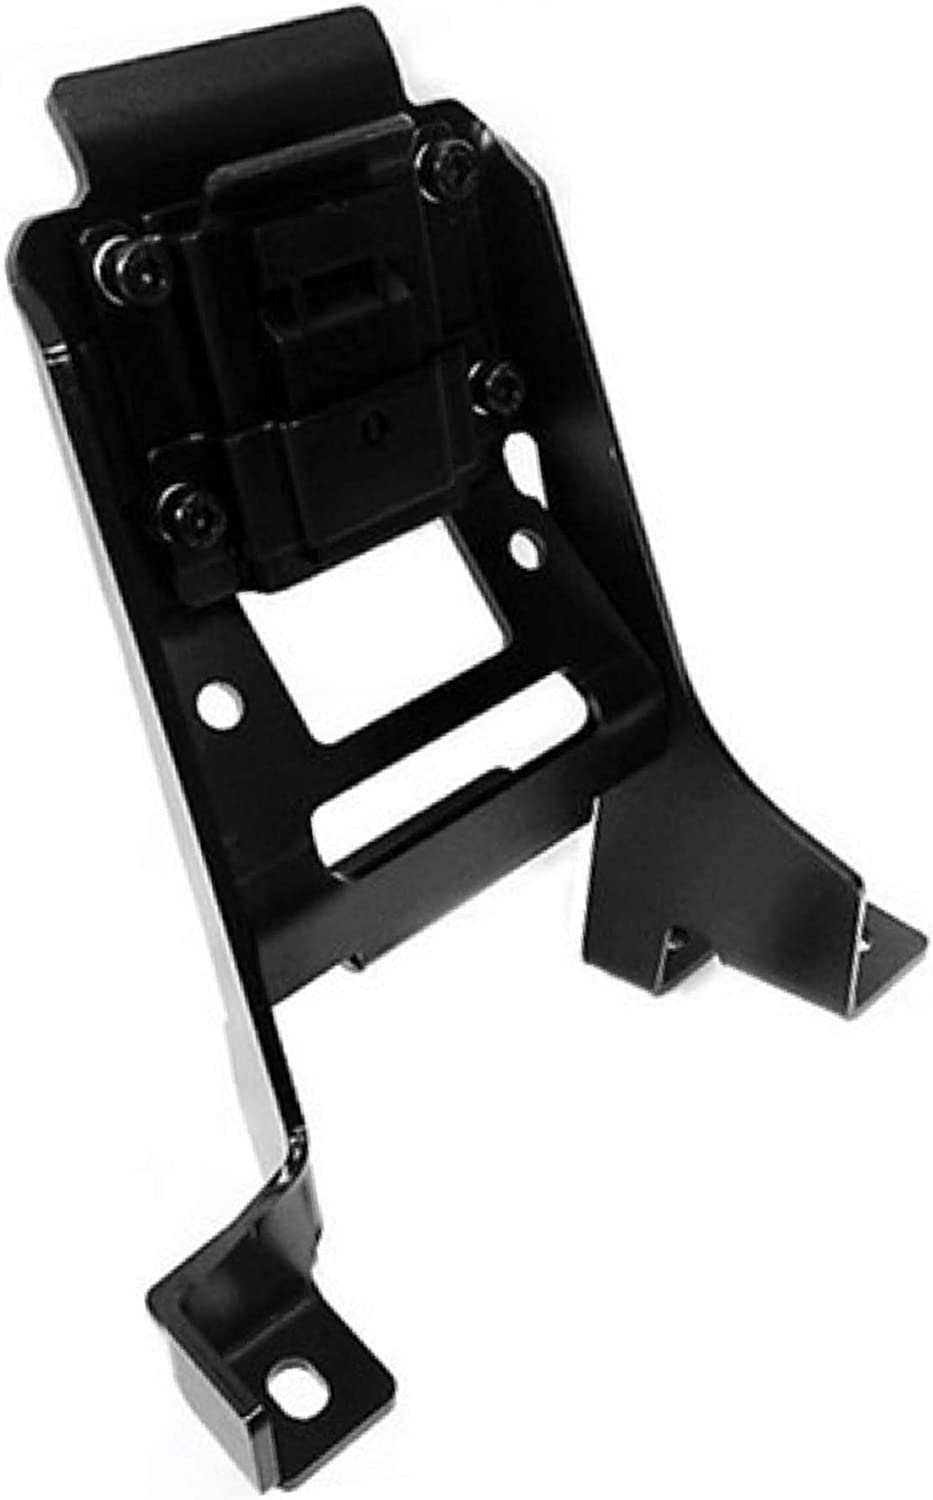 Driver Rider Backrest Mounting Mount Bracket for Indian Motorcycles Like Chieftain Elite Chief Springfield Roadmaster Dark Horse Limited Classic years 2014-2020 Road Master Bike Back Rest ref 2879543